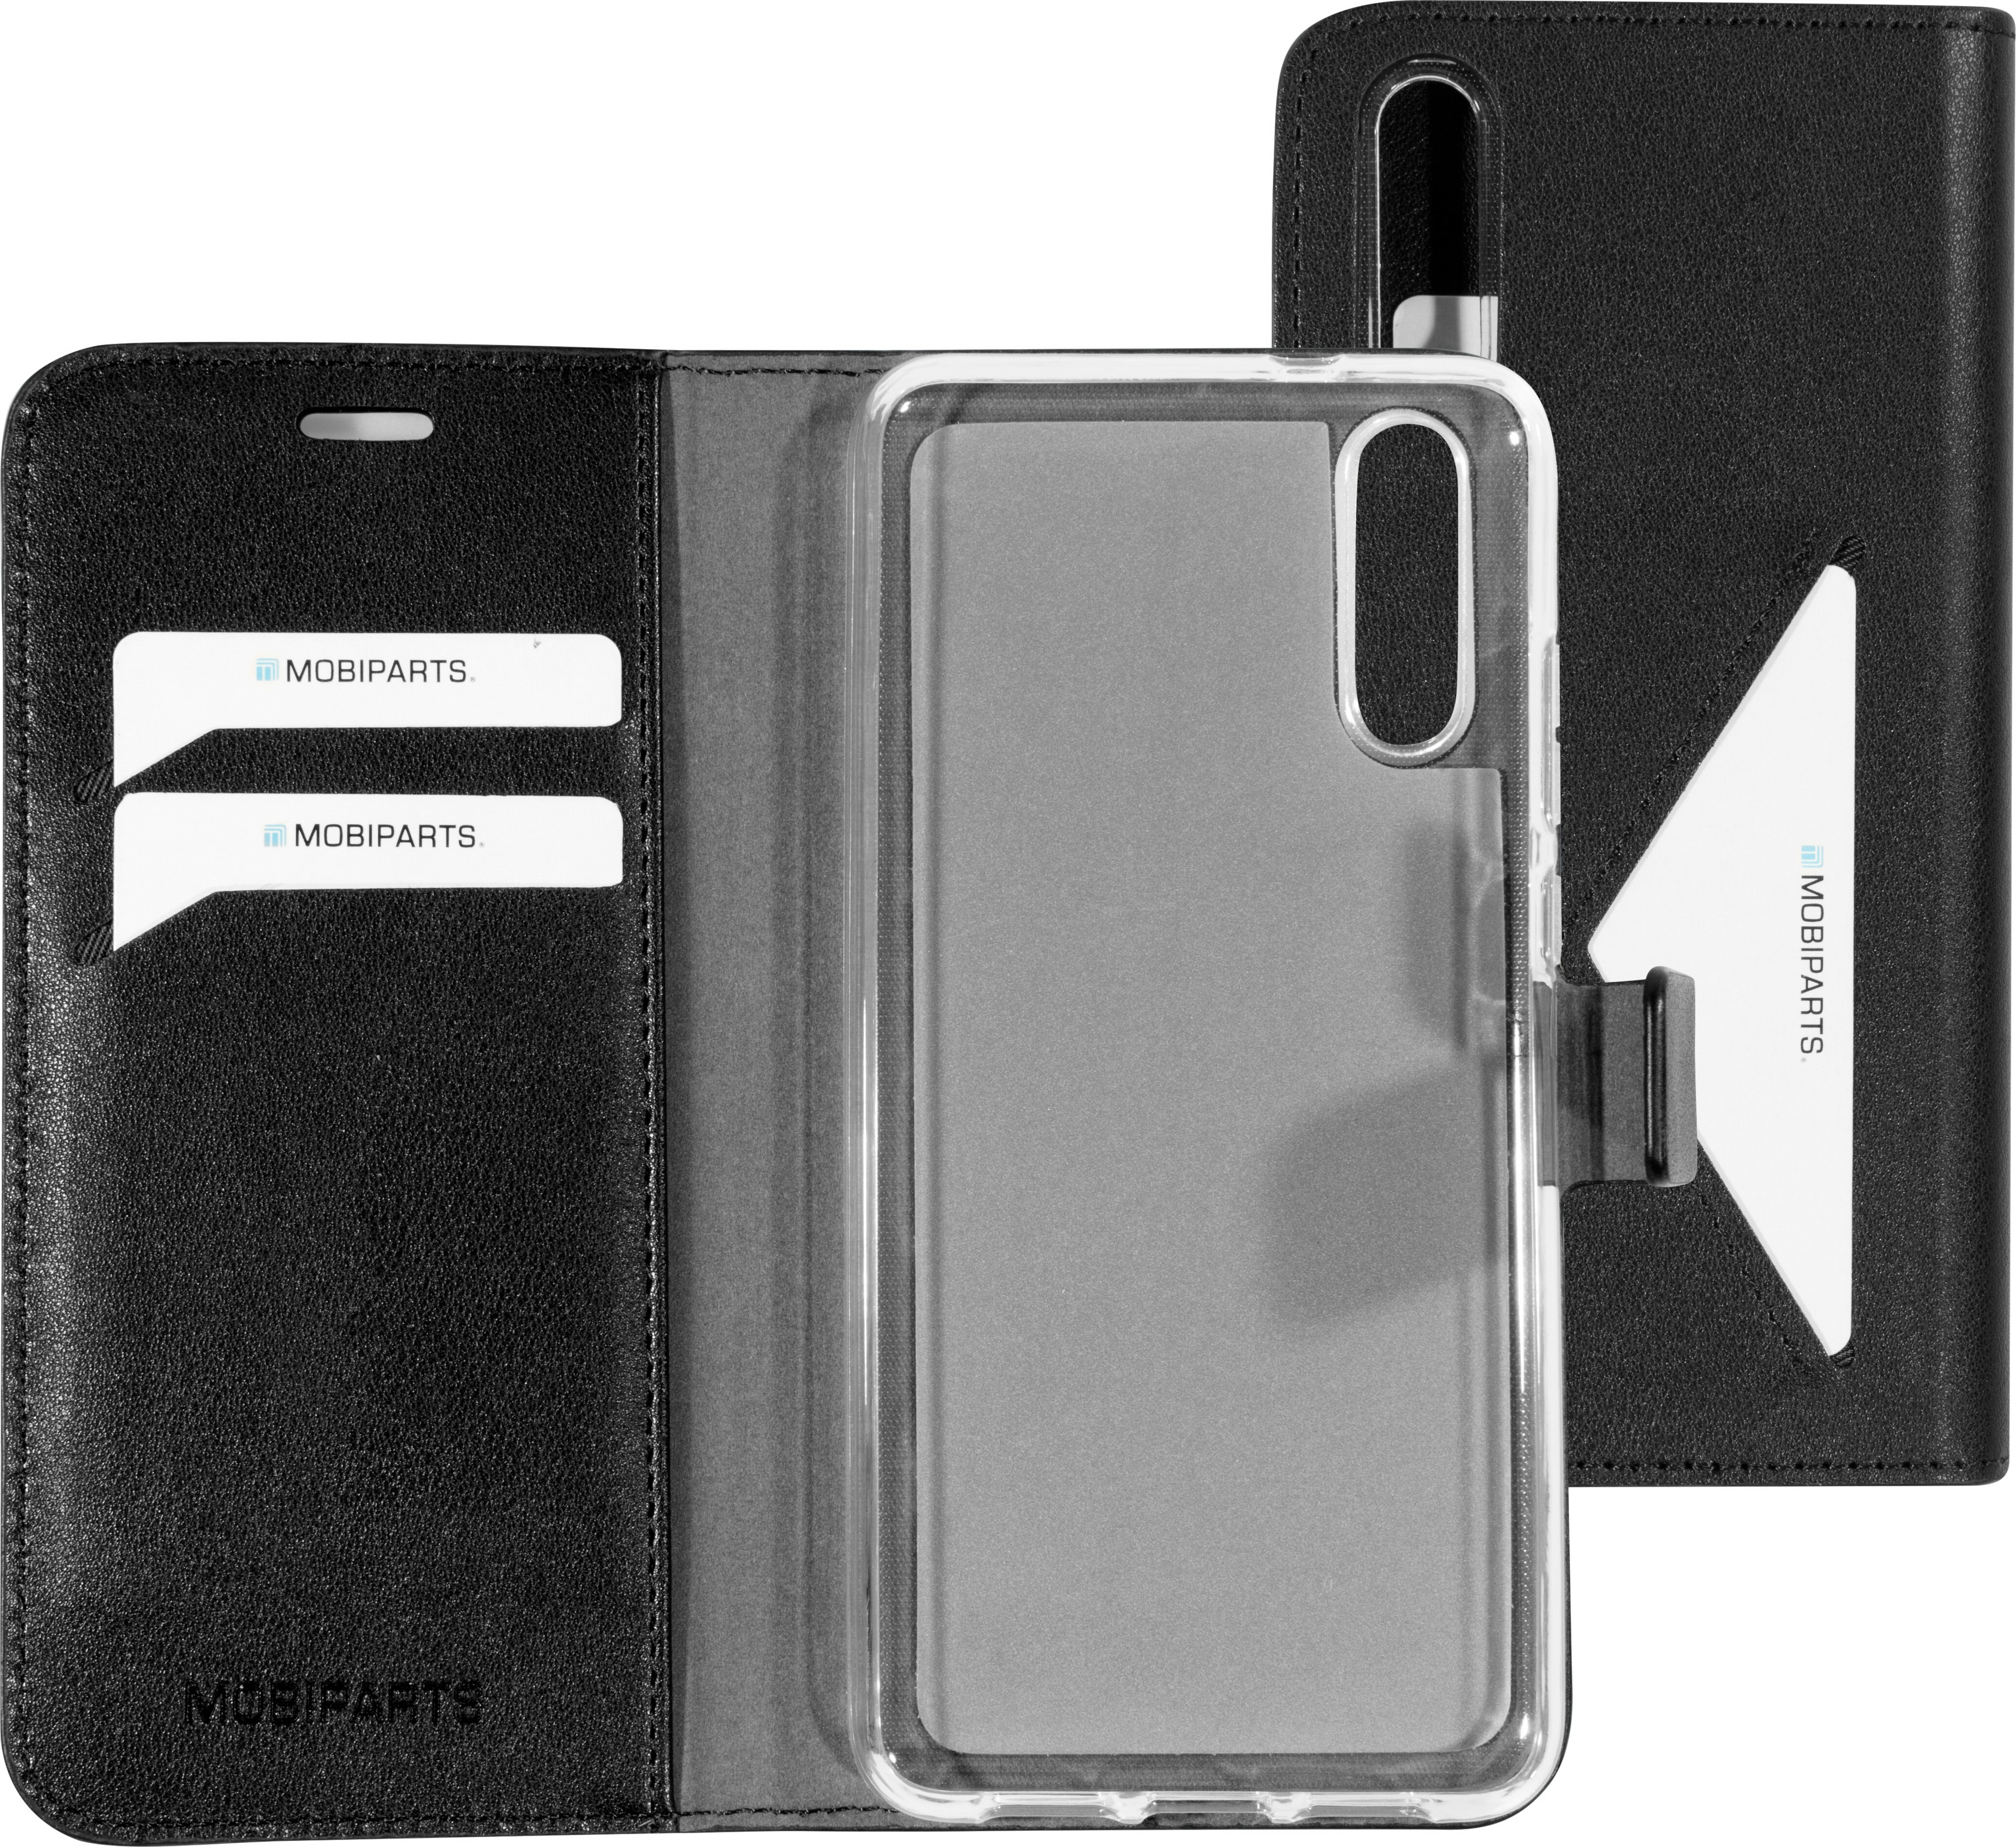 Mobiparts Classic Wallet Case Huawei P20 Black